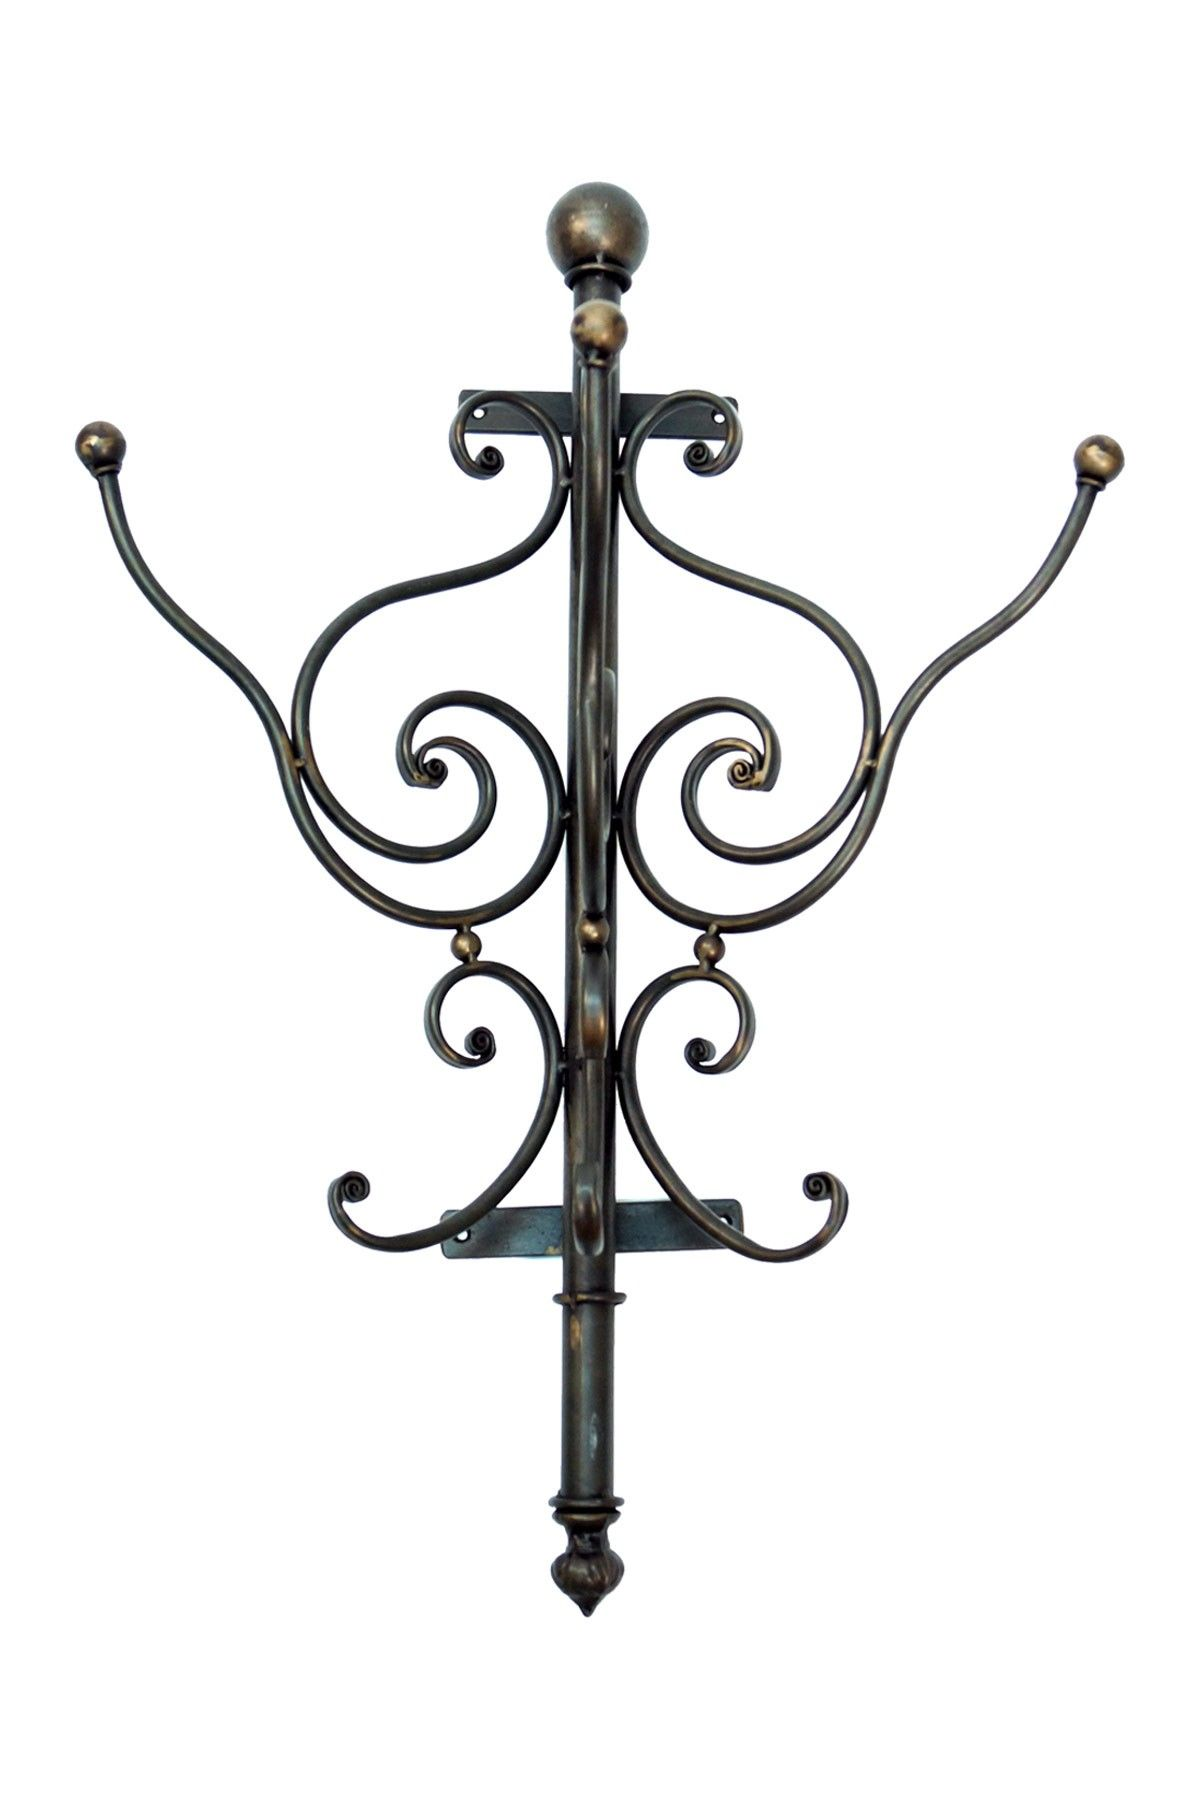 Mini Wall Mount Wrought Iron Coat Rack Could Mount